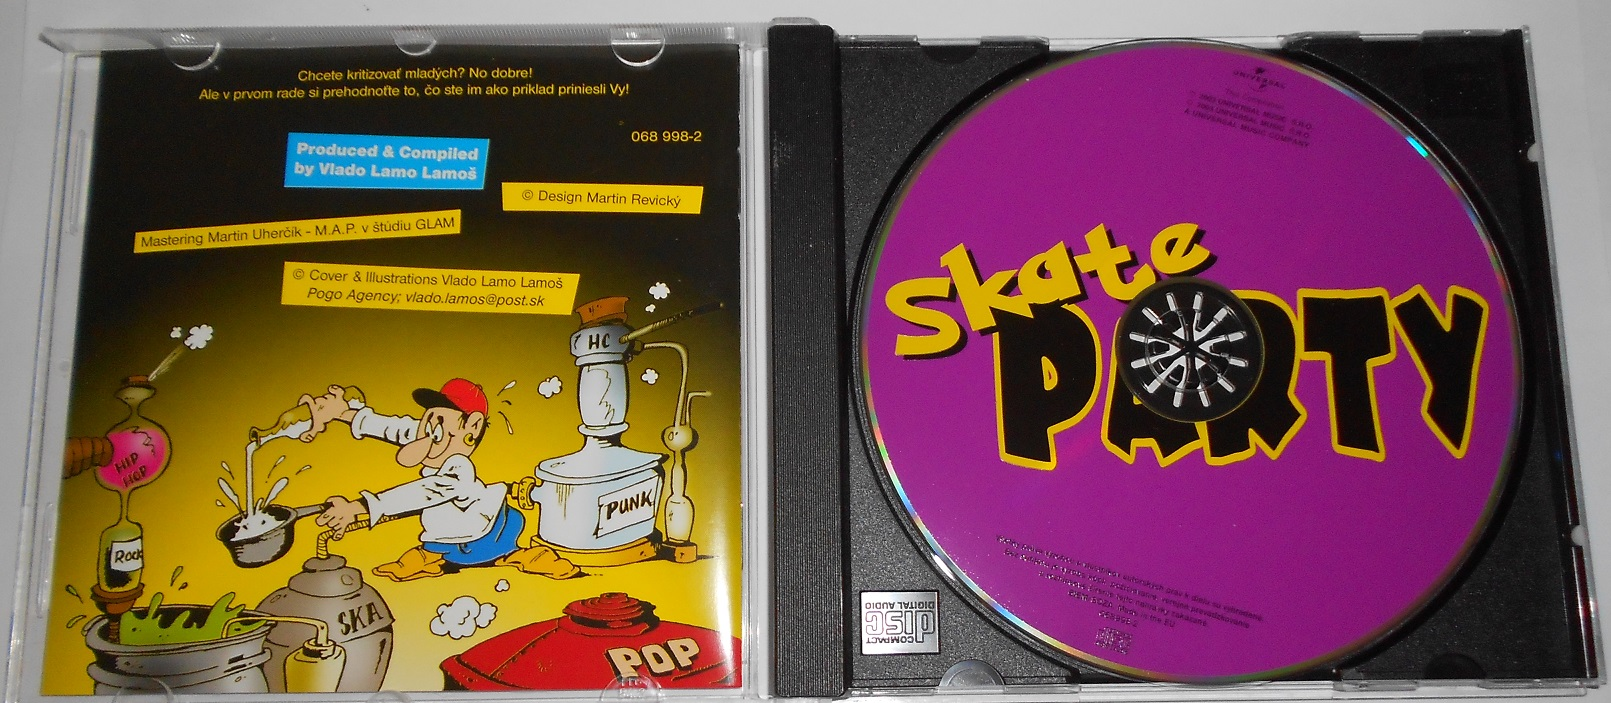 V/A - Skate Party (Iné Kafe, Hex, Nuda) (CD)